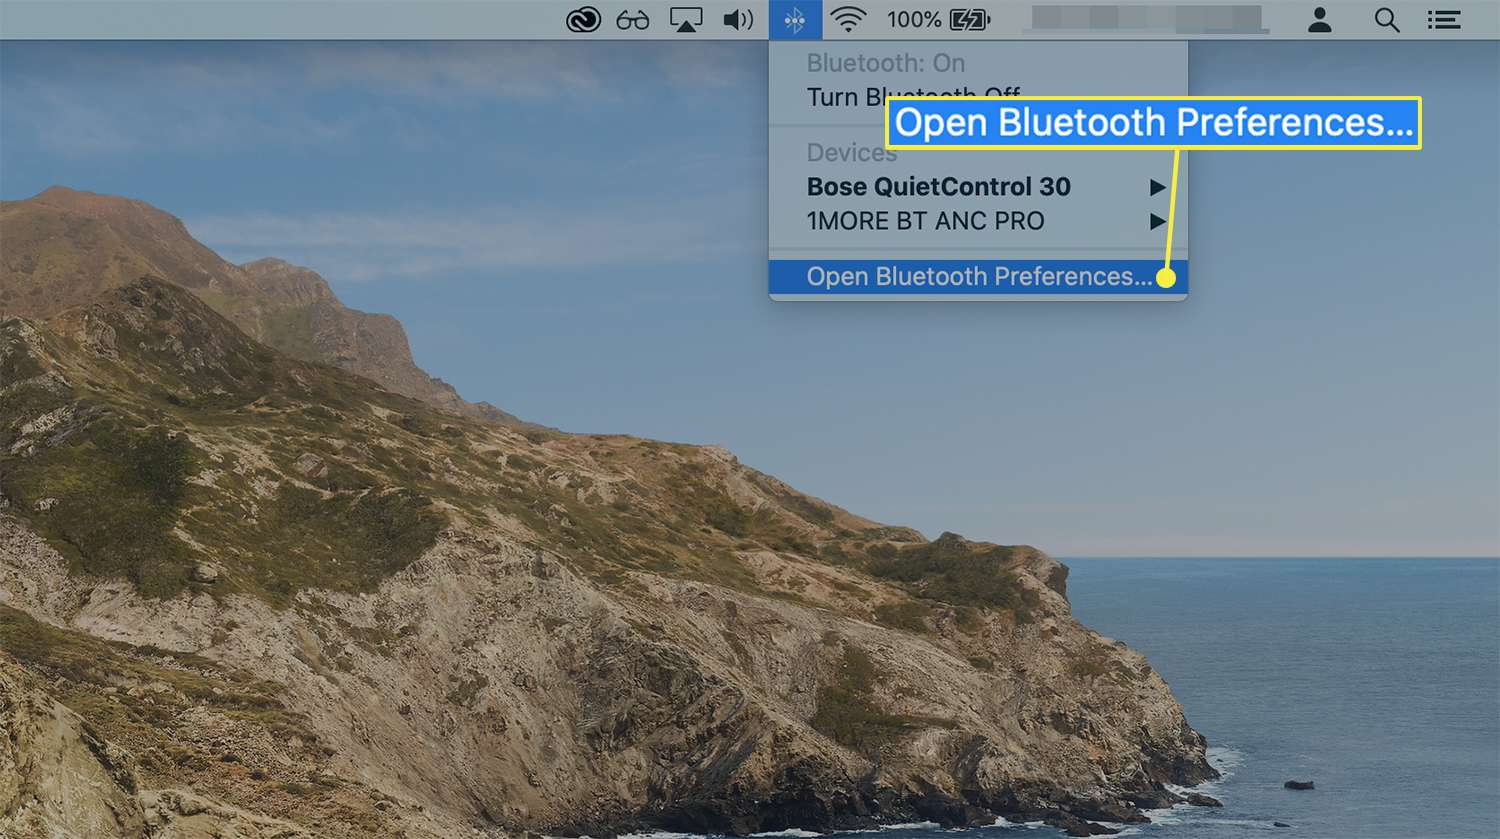 Open Bluetooth Preferences option from the Bluetooth menu icon